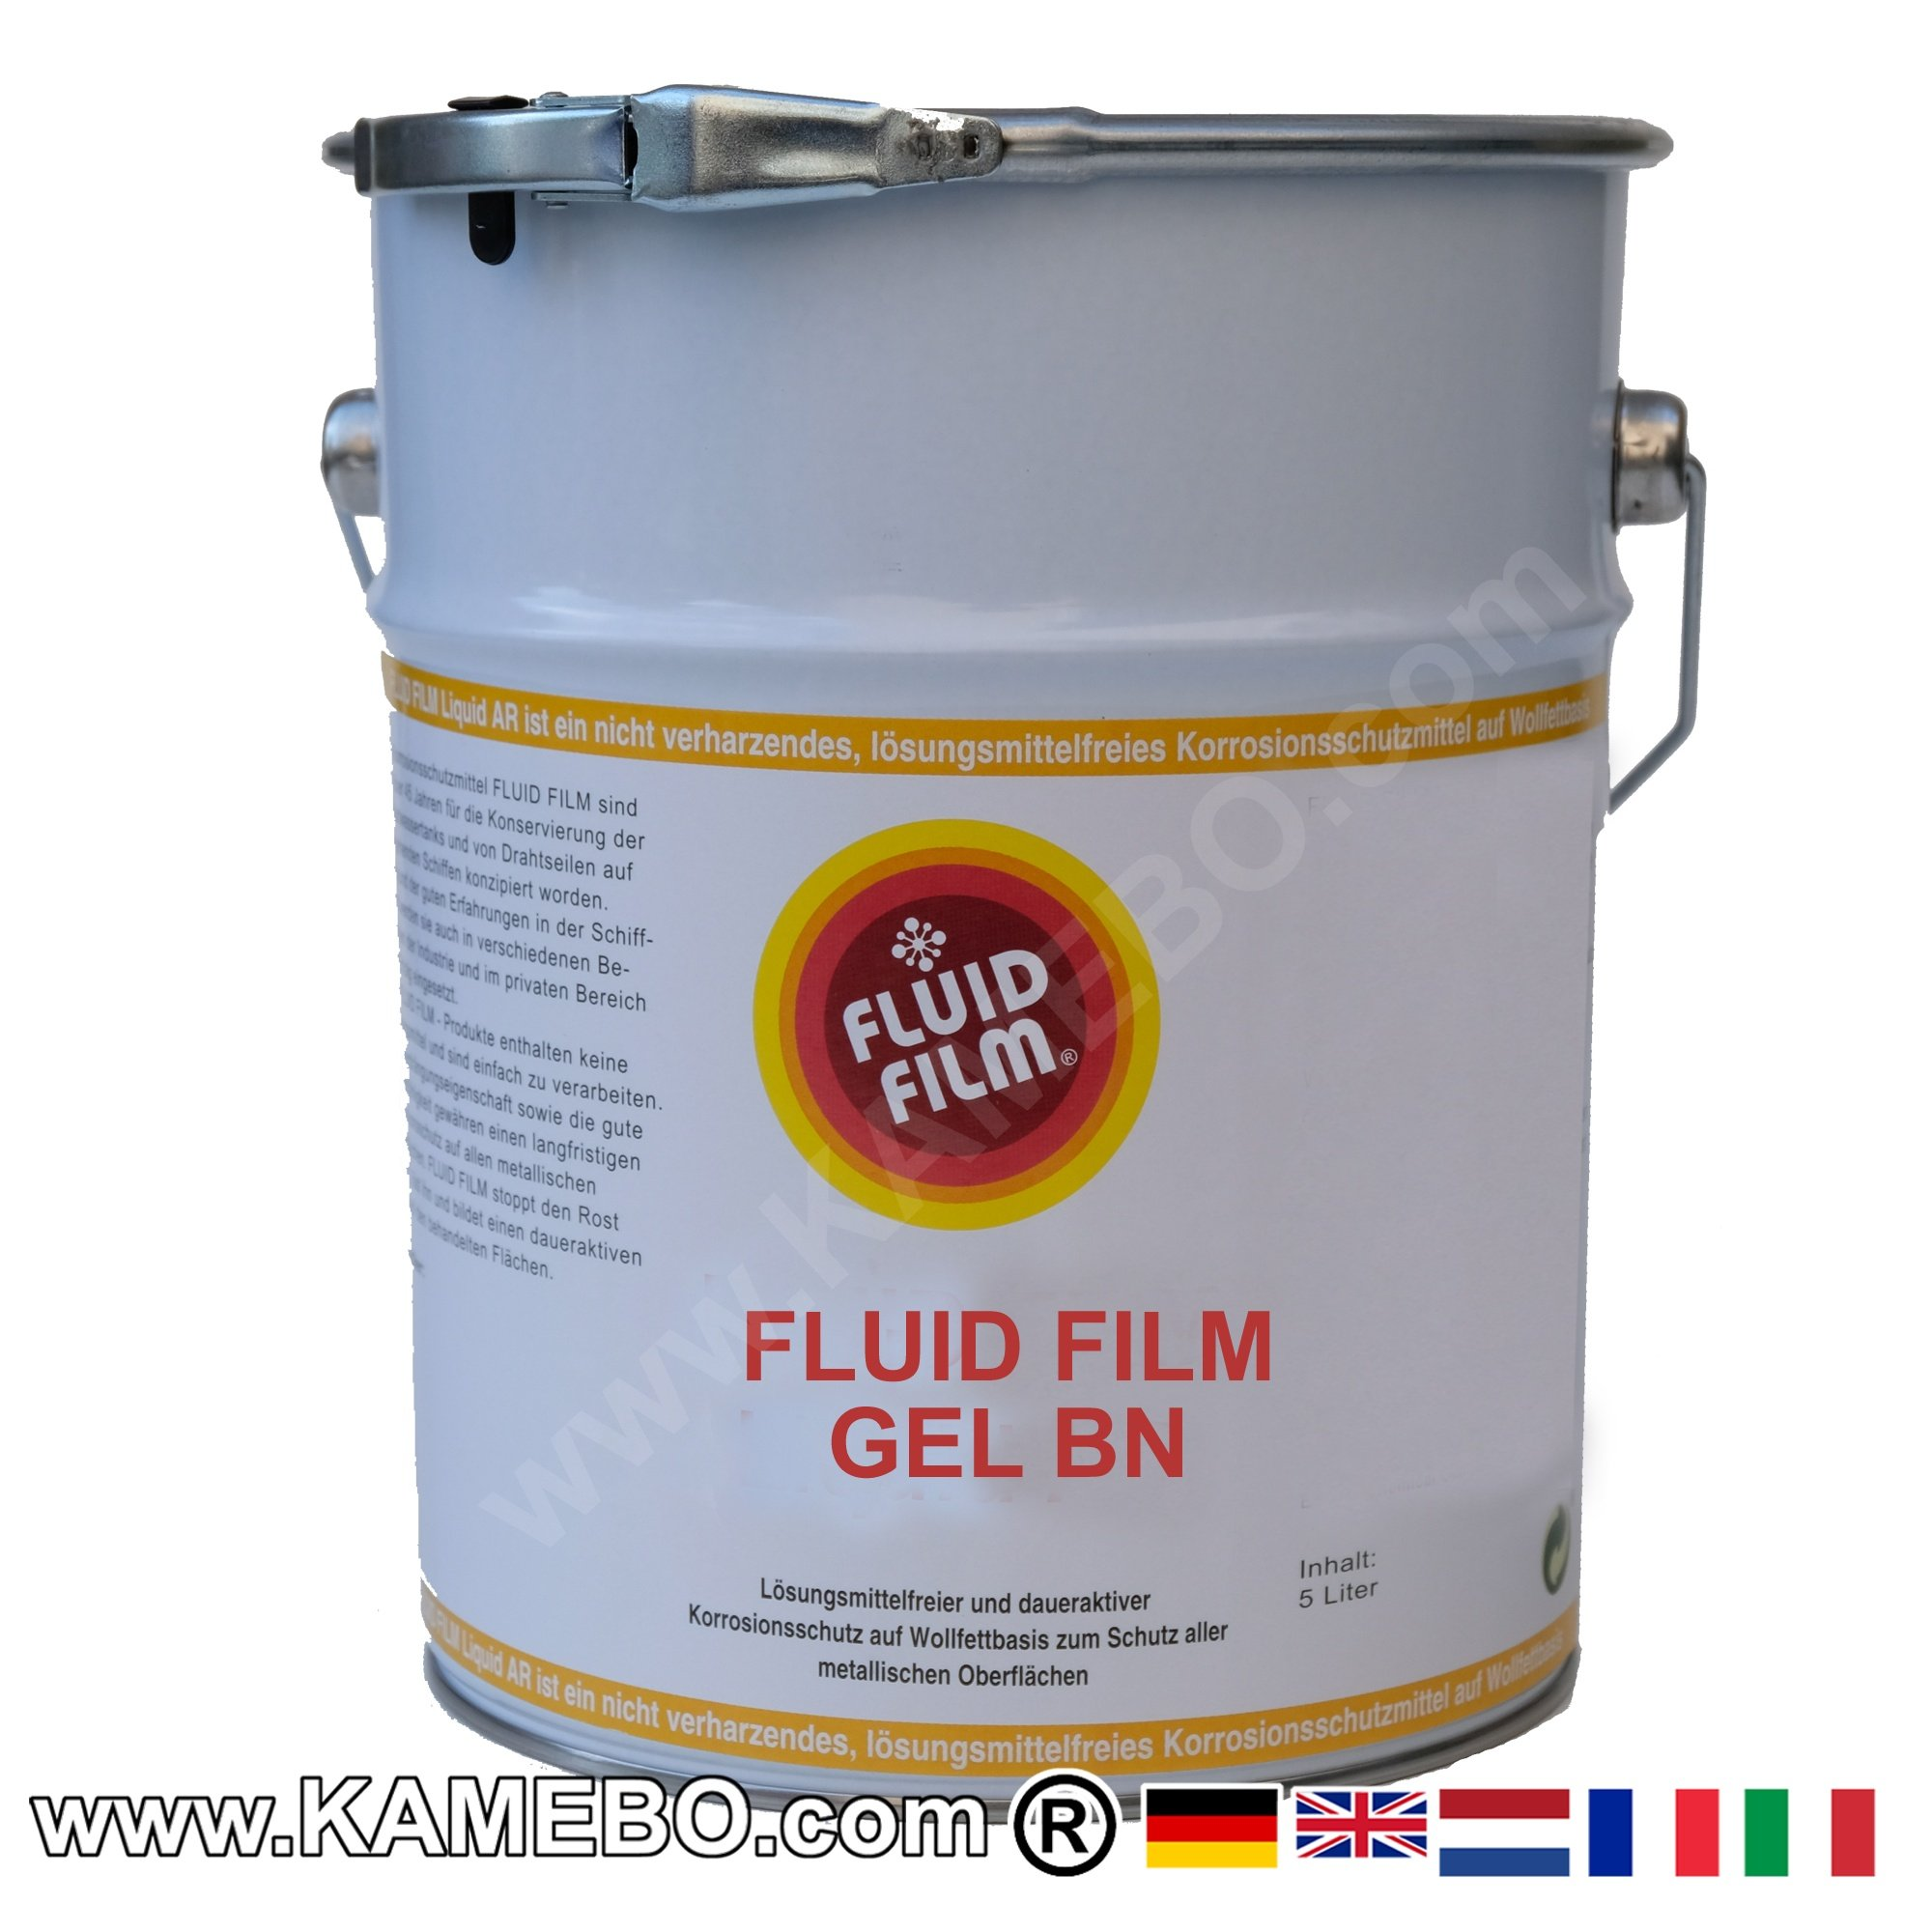 fluid film gel bn antirust grease 20 litres kamebo. Black Bedroom Furniture Sets. Home Design Ideas